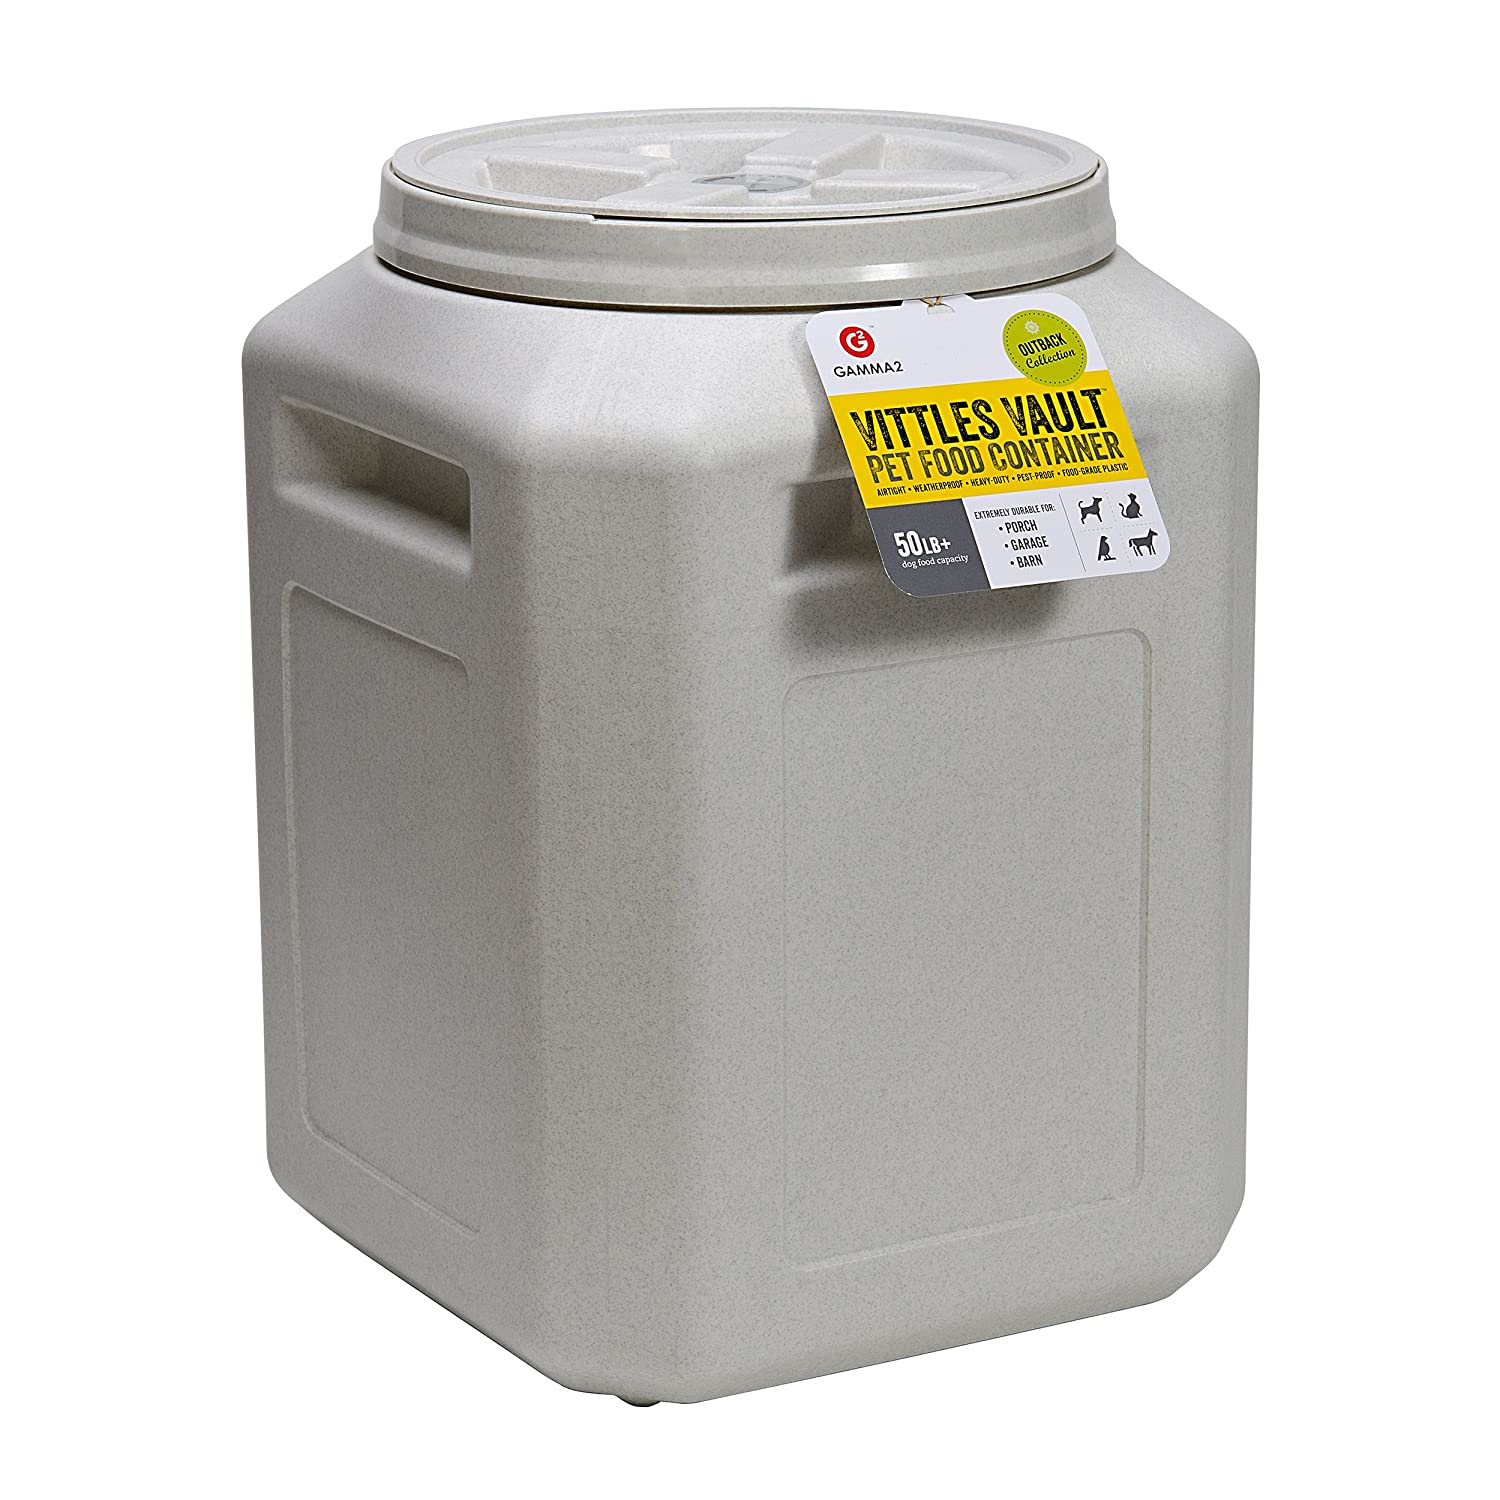 Amazon.com : Vittles Vault Outback 50 lb Airtight Pet Food Storage Container Products Supplies